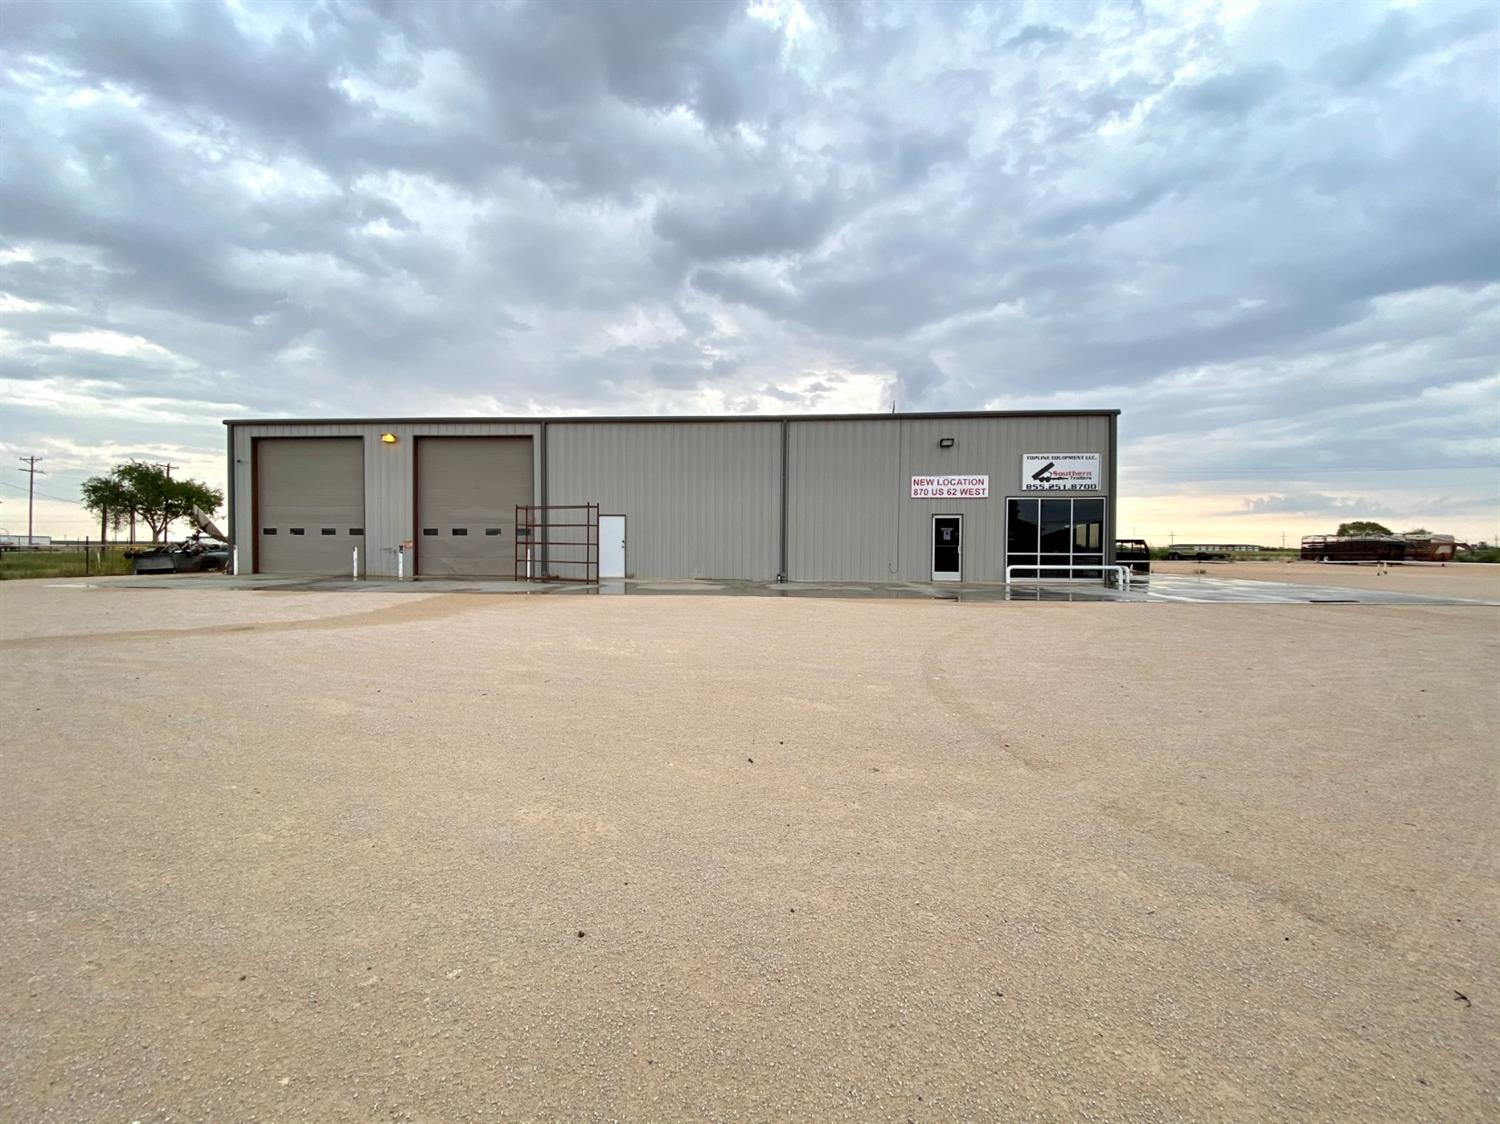 Don't miss out on this AMAZING opportunity to own acreage on MAIN STREET in Seminole, Tx. HWY 62 is a highly traveled street that could drive a lot of traffic to your business. This property includes over 2 acres of land with 2 large steel buildings totally 8,000 square feet. The larger building to the north is 5,000 square feet & the smaller one to the south is 3,000. Both have office/retail space long with workshop areas. Large garage doors on both buildings and tons of potential for any business. You just CANNOT beat this main street frontage.